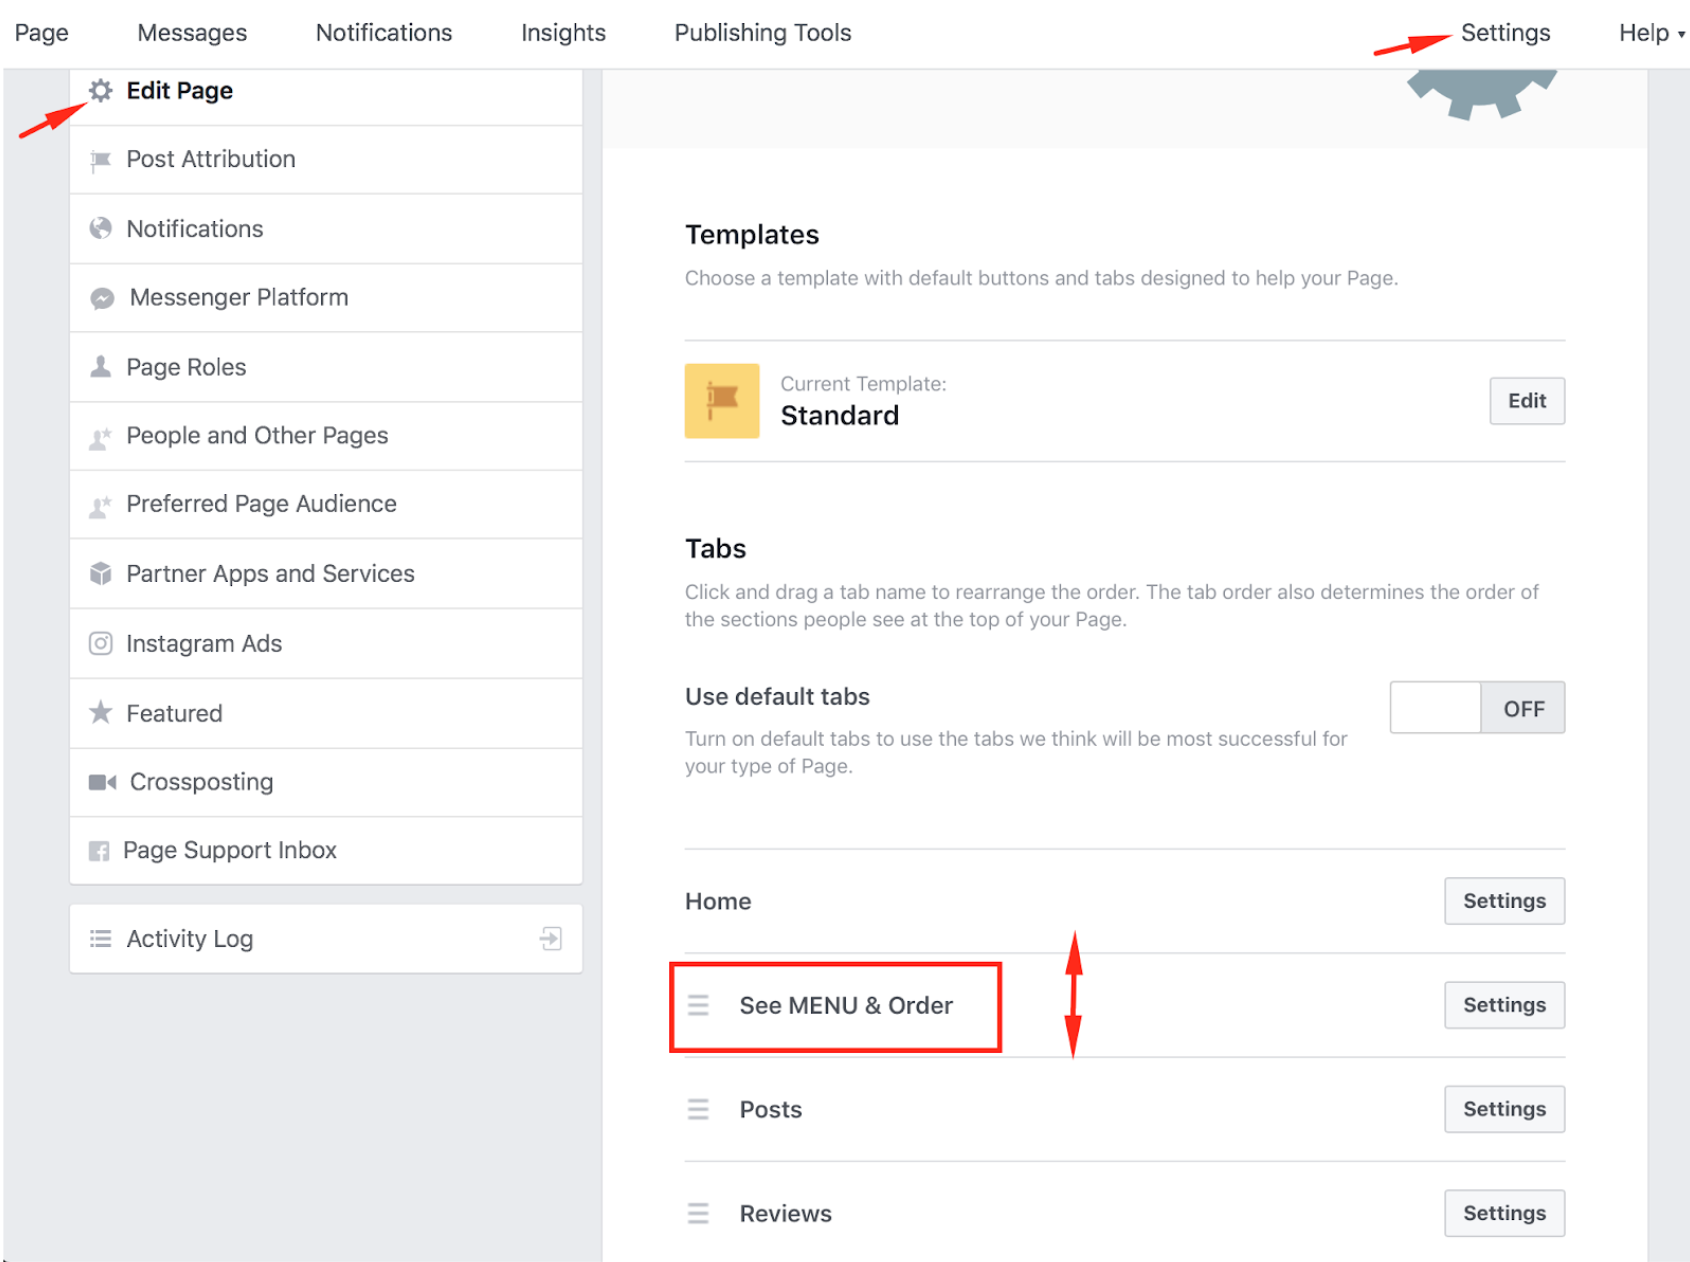 How to publish the menu to your Facebook page 8